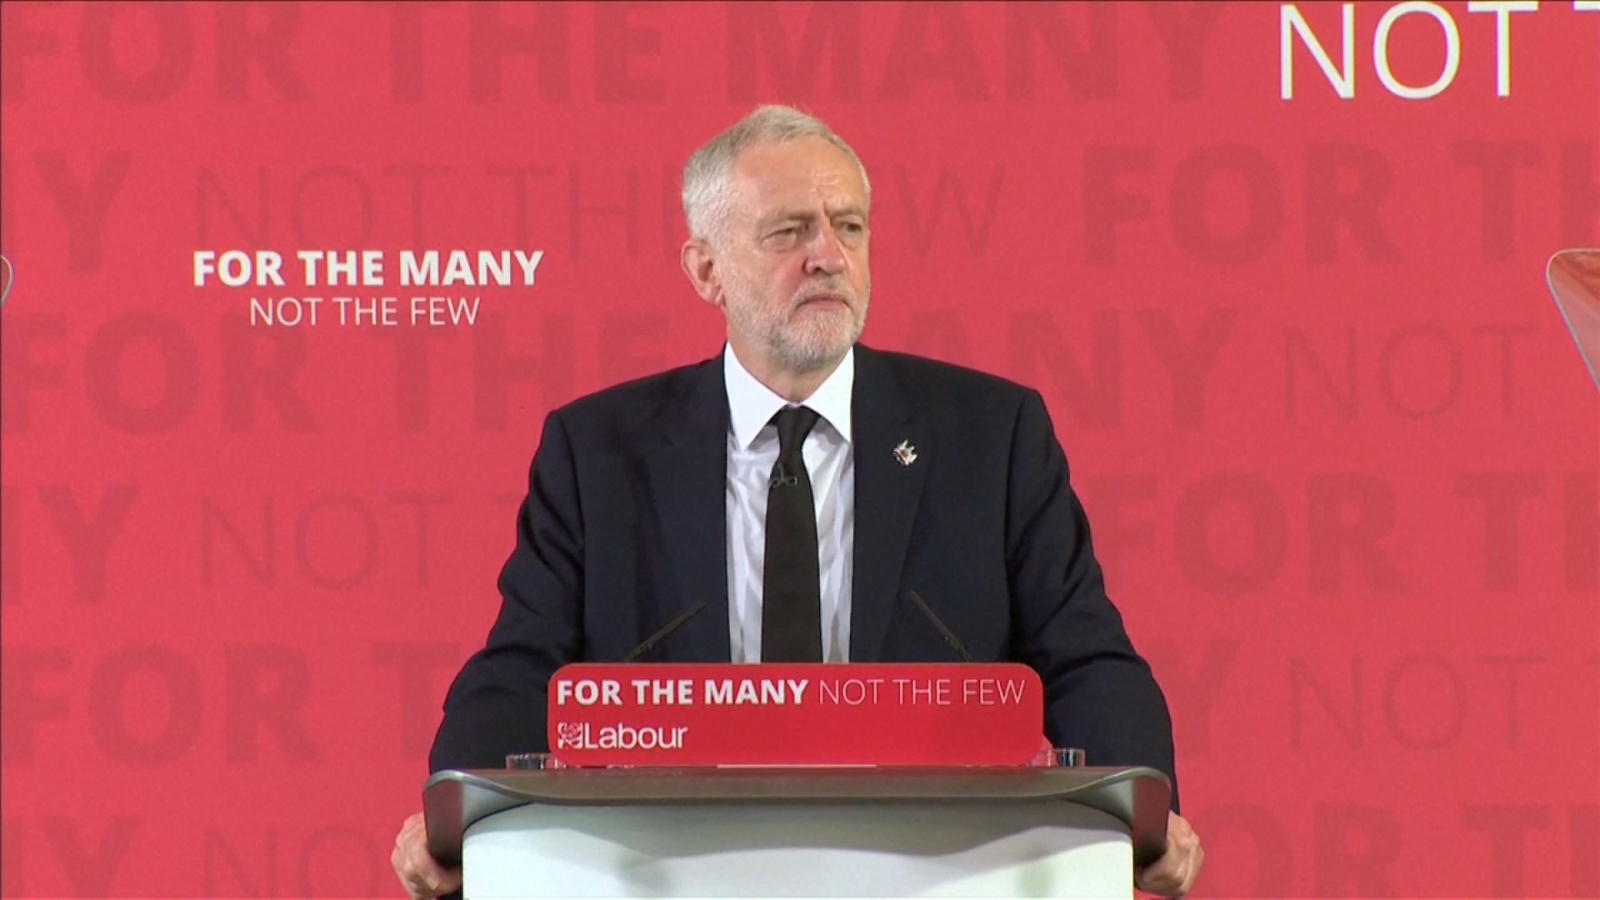 labour-party-leader-jeremy-corbyn-the-war-on-terror-is-not-working